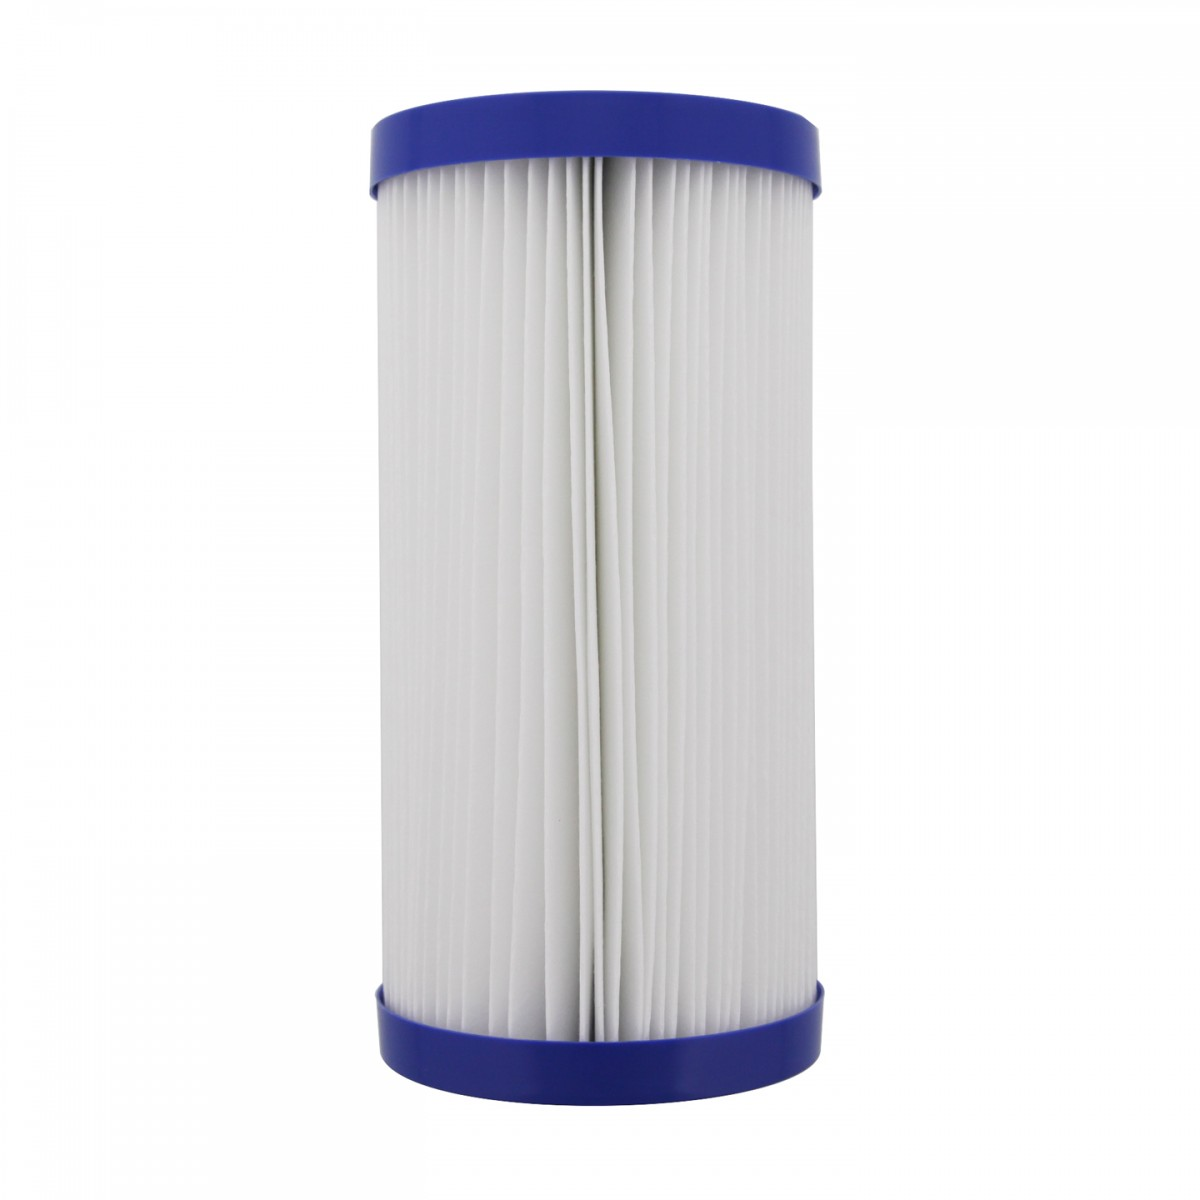 RS6-SS2-S06 OmniFilter Whole House Water Filter Cartridge